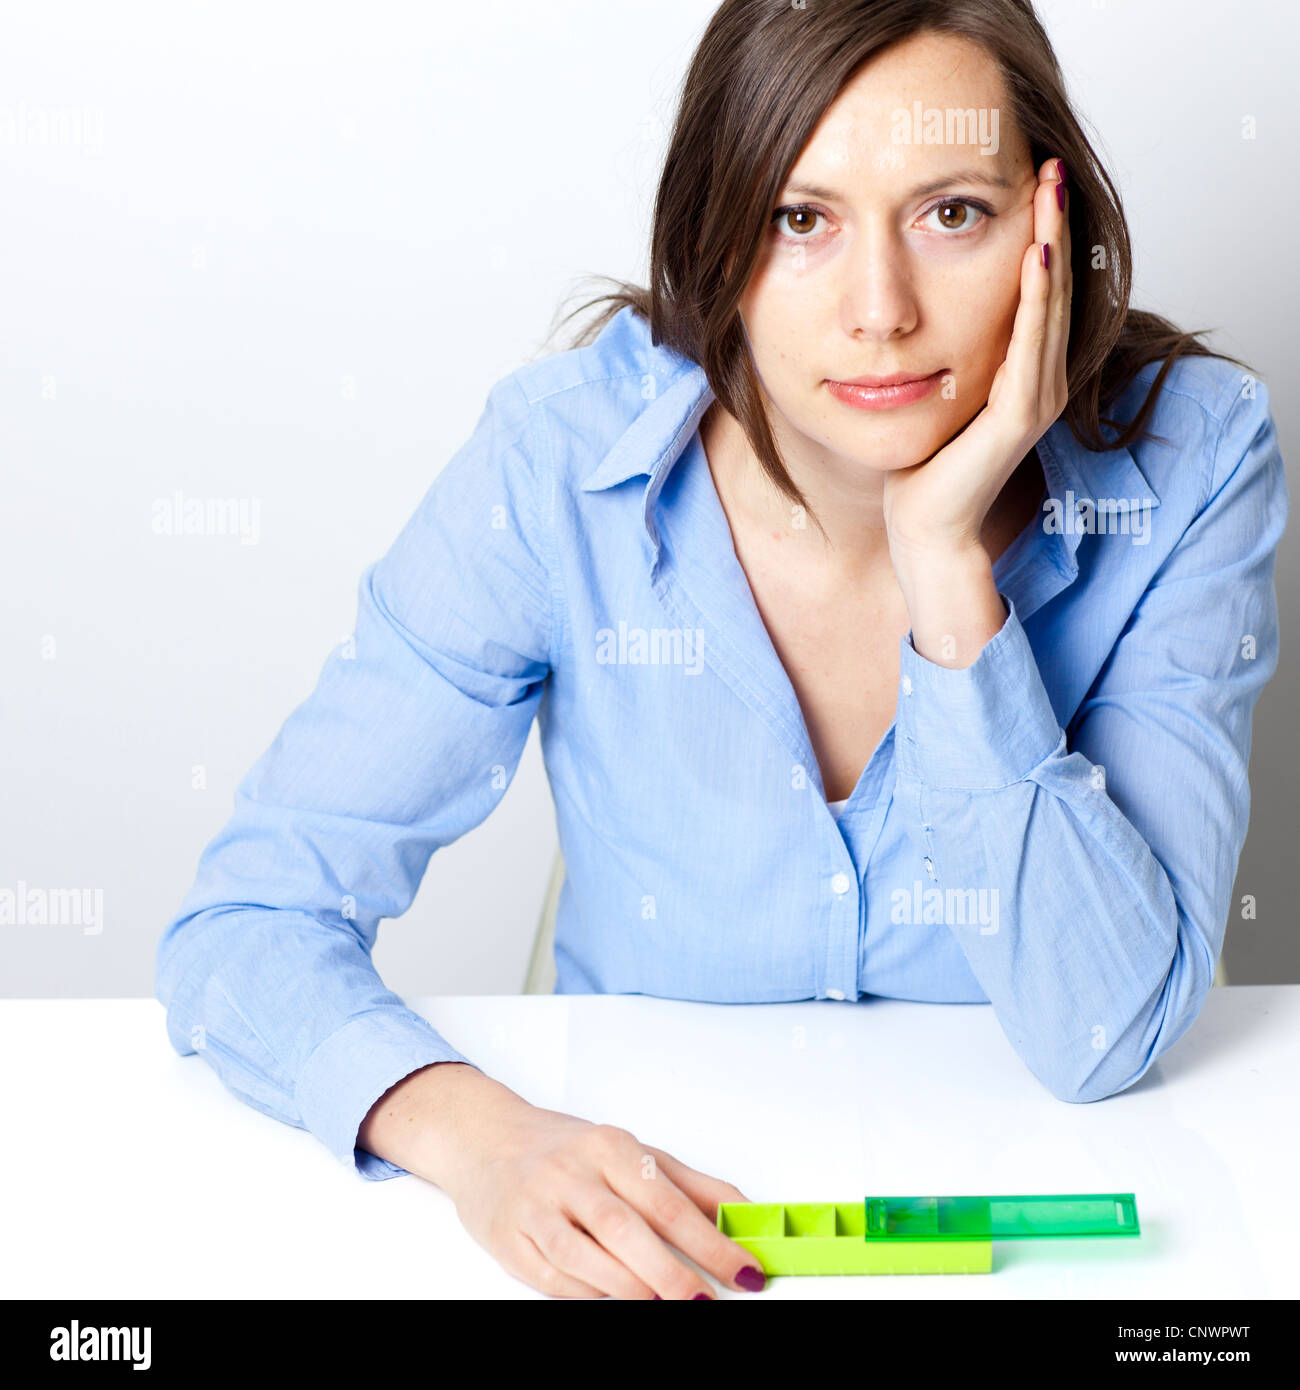 woman with daily dose of medication - Stock Image